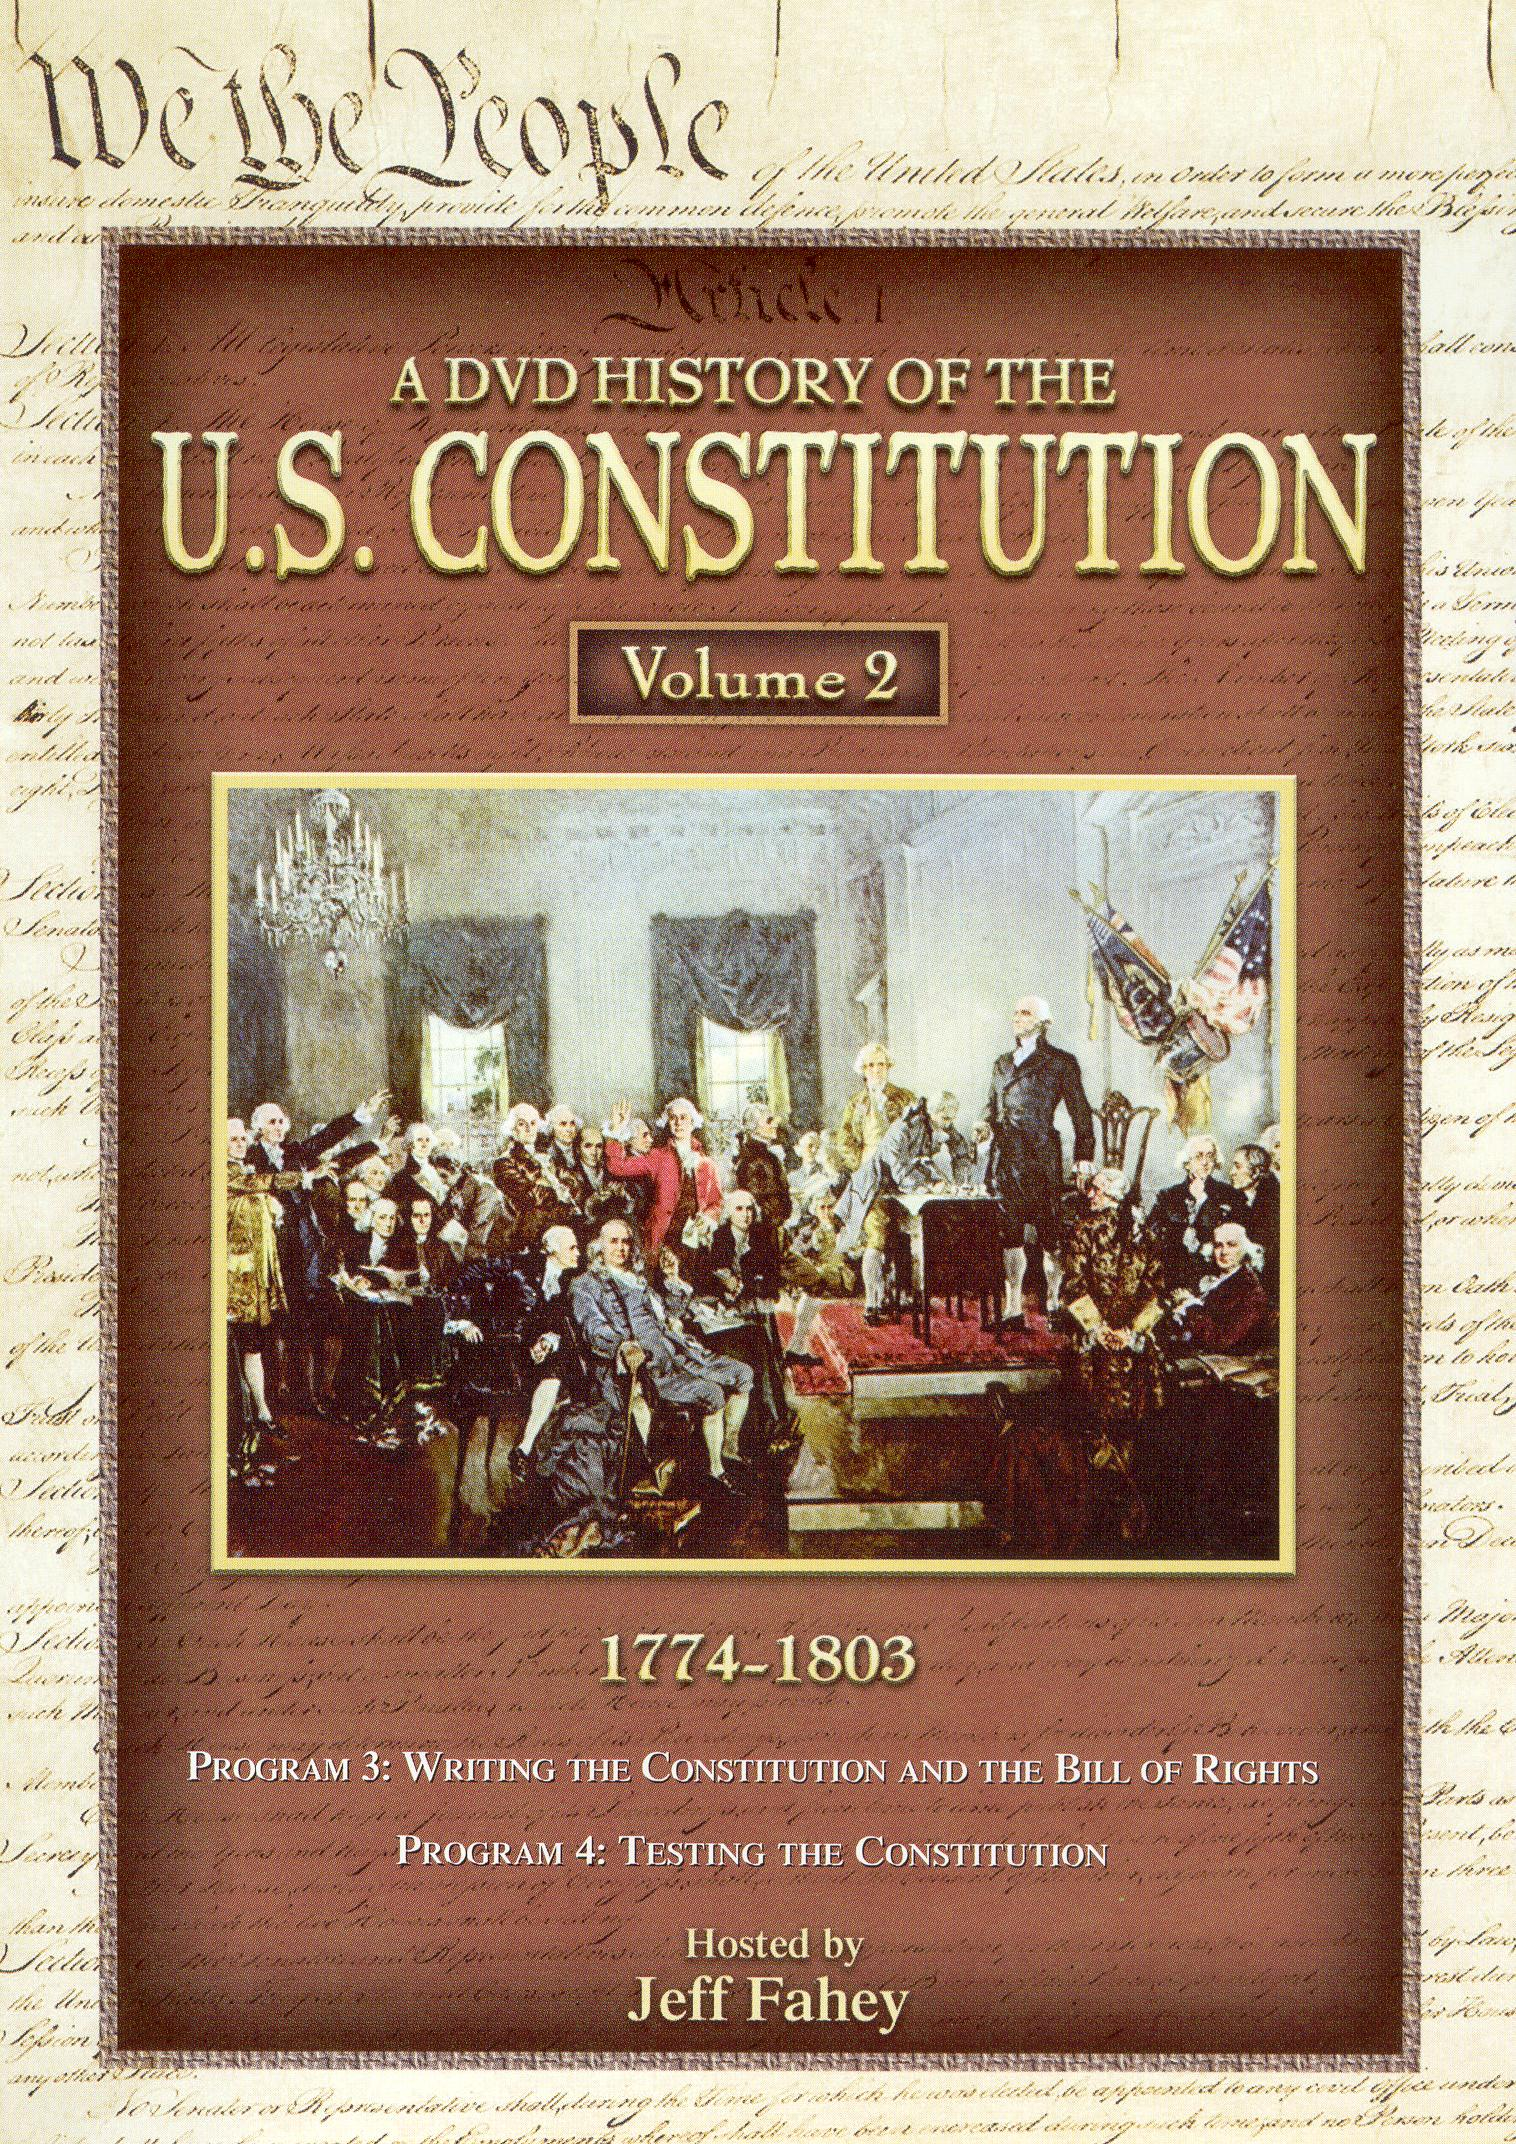 A DVD History of the U.S. Constitution, Vol. 2: 1774-1803